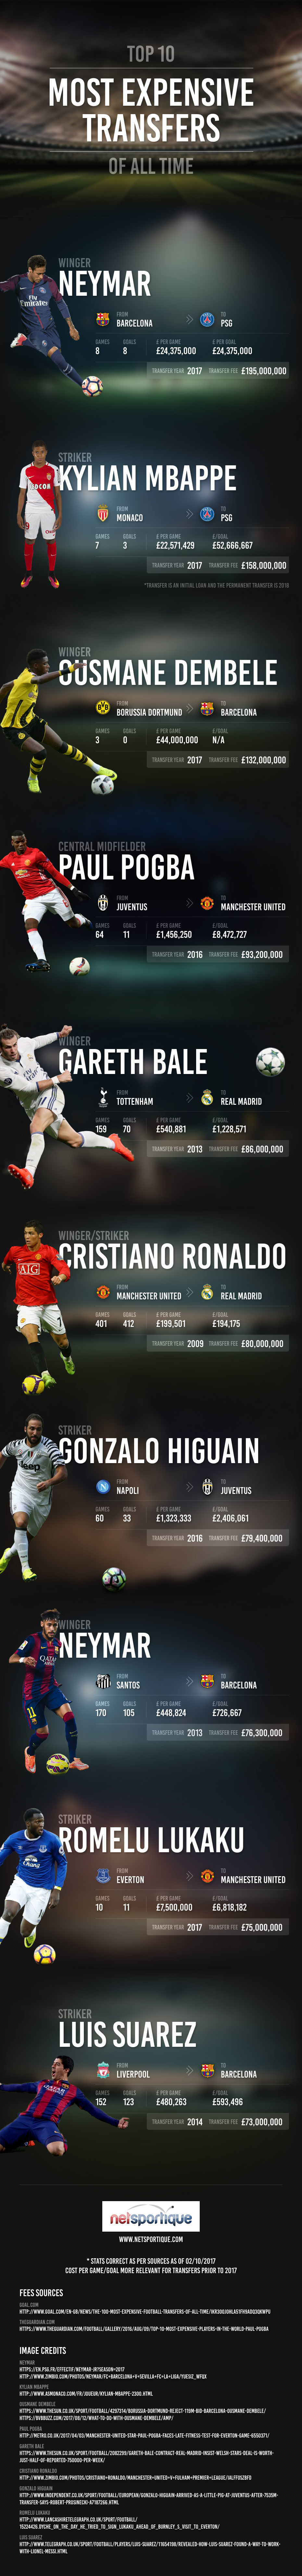 Top 10 Most Expensive Football Transfers of All Time by Netsportique